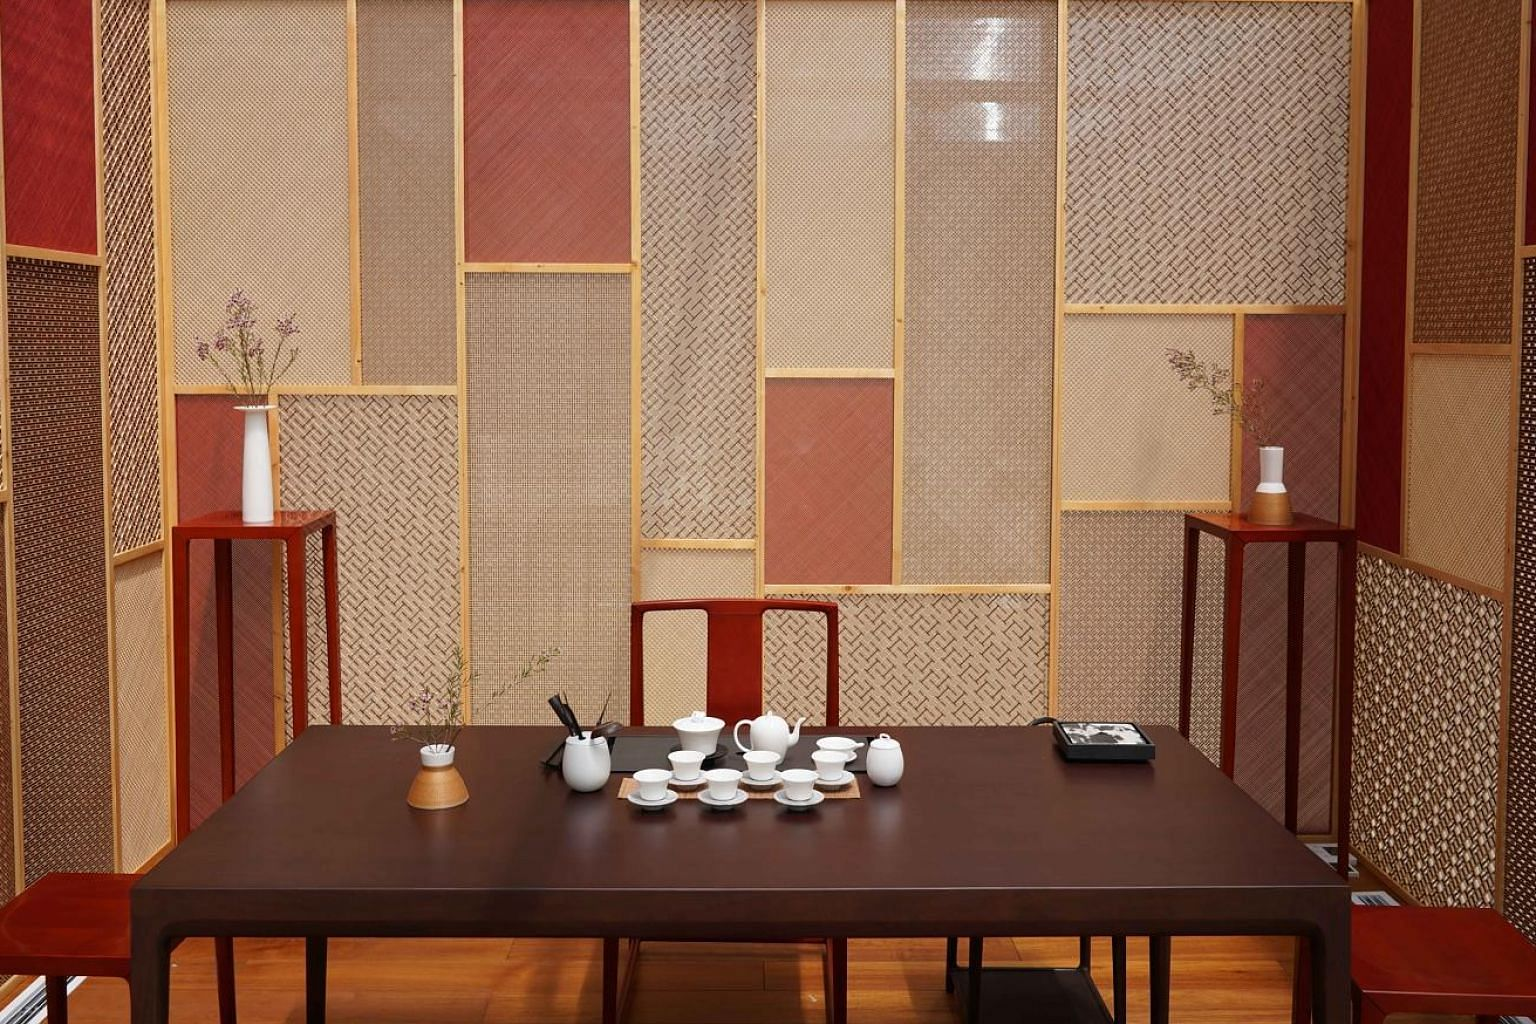 Like a sort of customisable package deal, Shang Xia designs the walls and ceilings and proposes the furniture and related objects, such as tea sets, tea tools, incense and flowers.